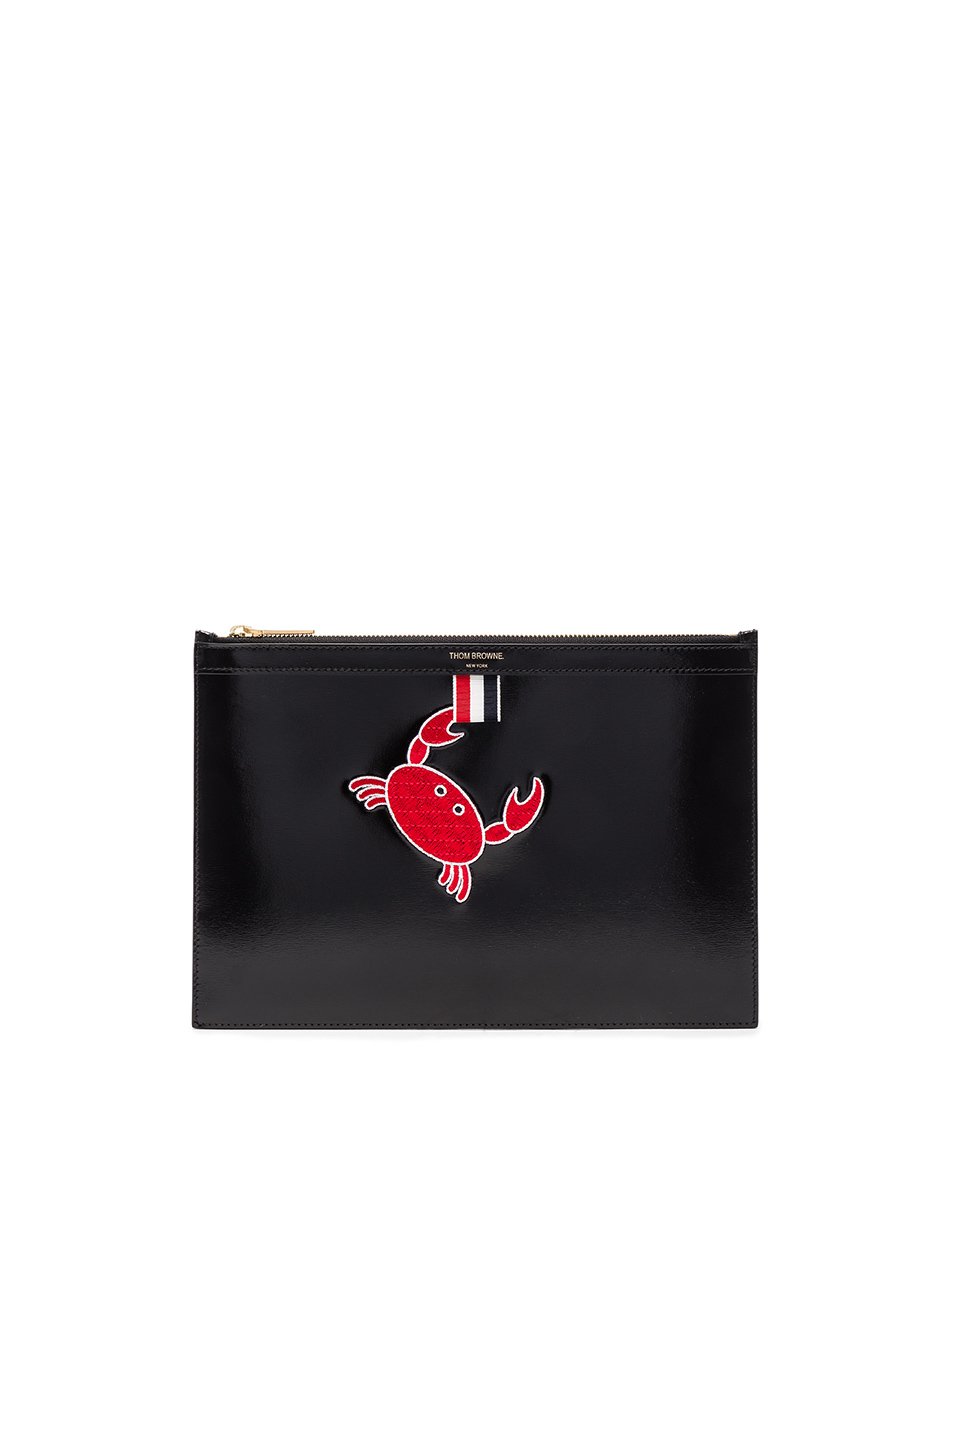 Thom Browne Embroidered Small Zipper Tablet Holder in Black